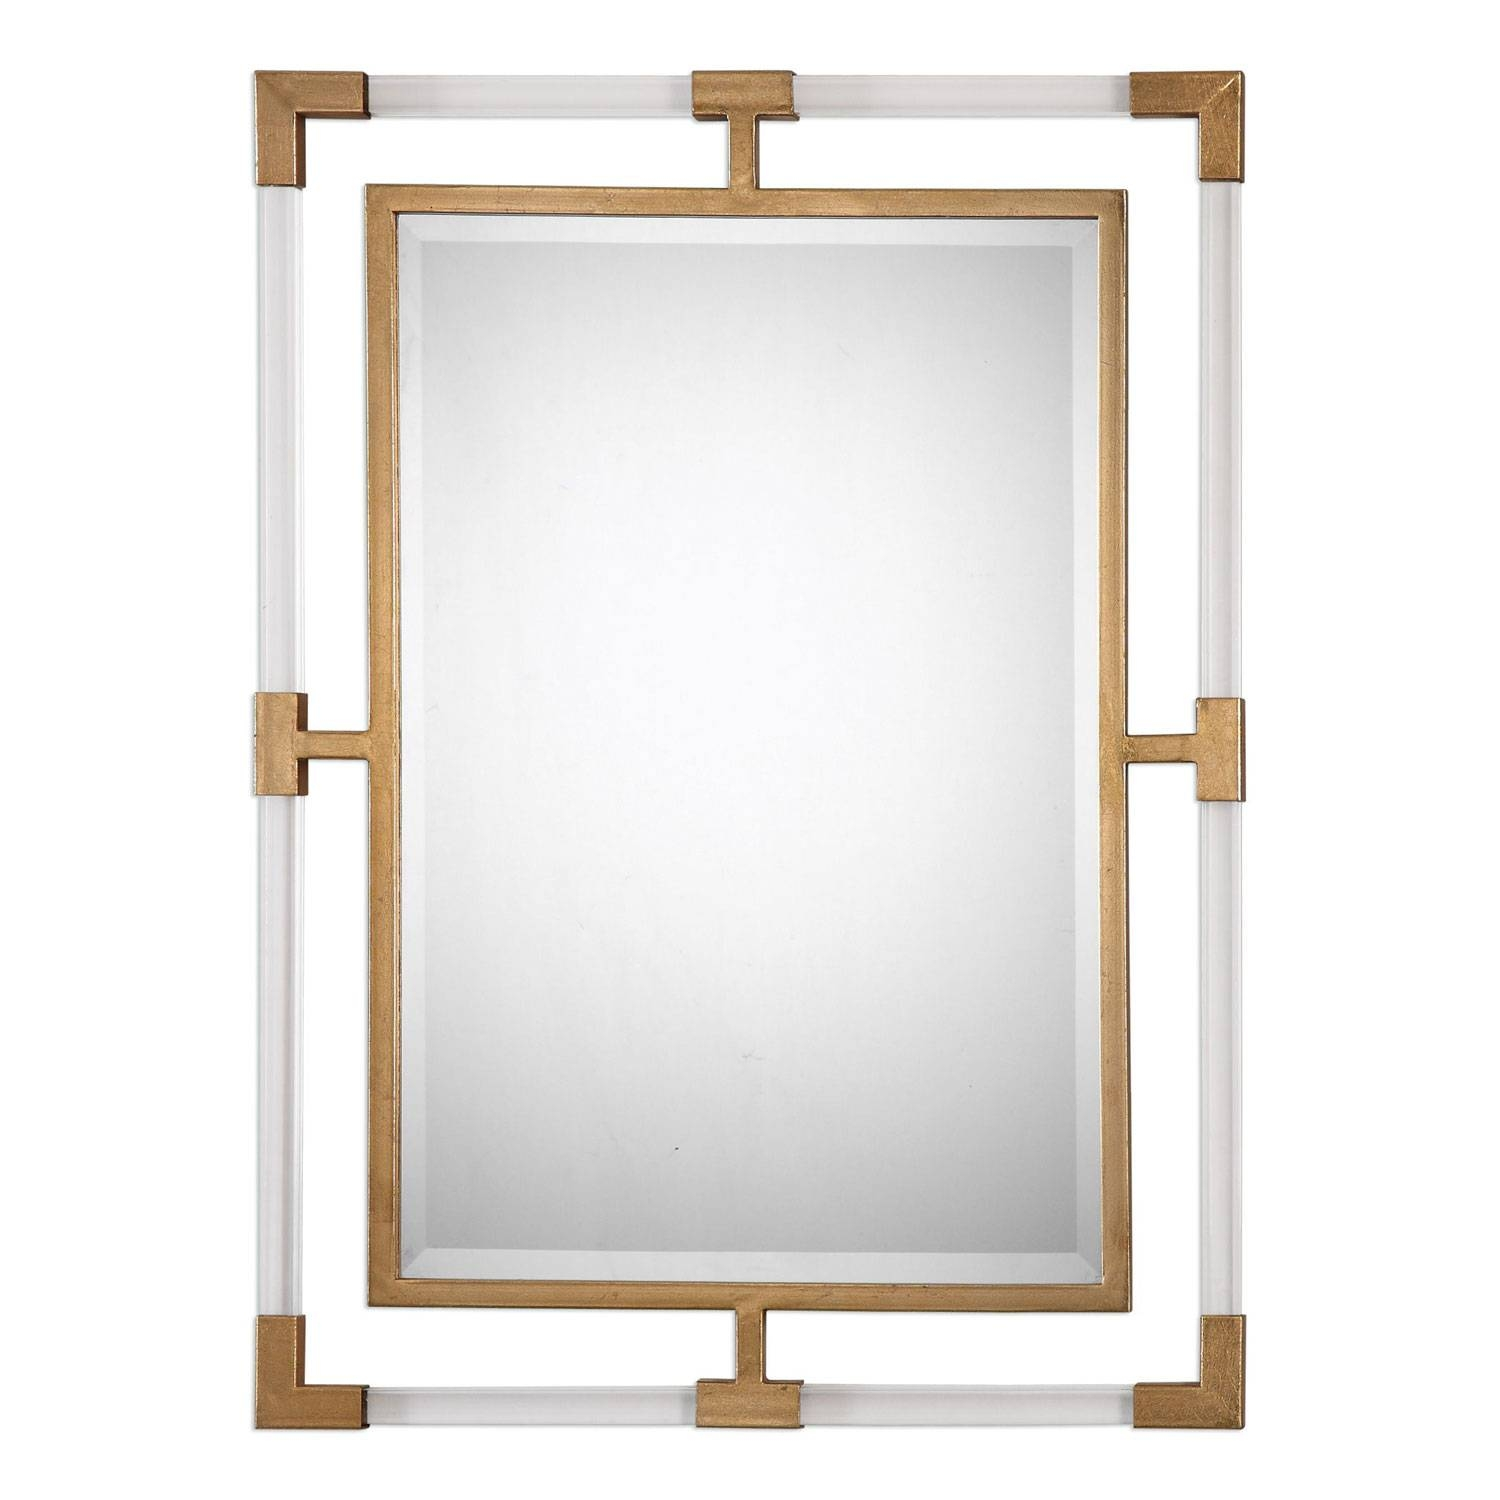 Balkan Modern Gold Wall Mirror Uttermost Wall Mirror Mirrors Home with regard to Modern Gold Mirrors (Image 5 of 25)